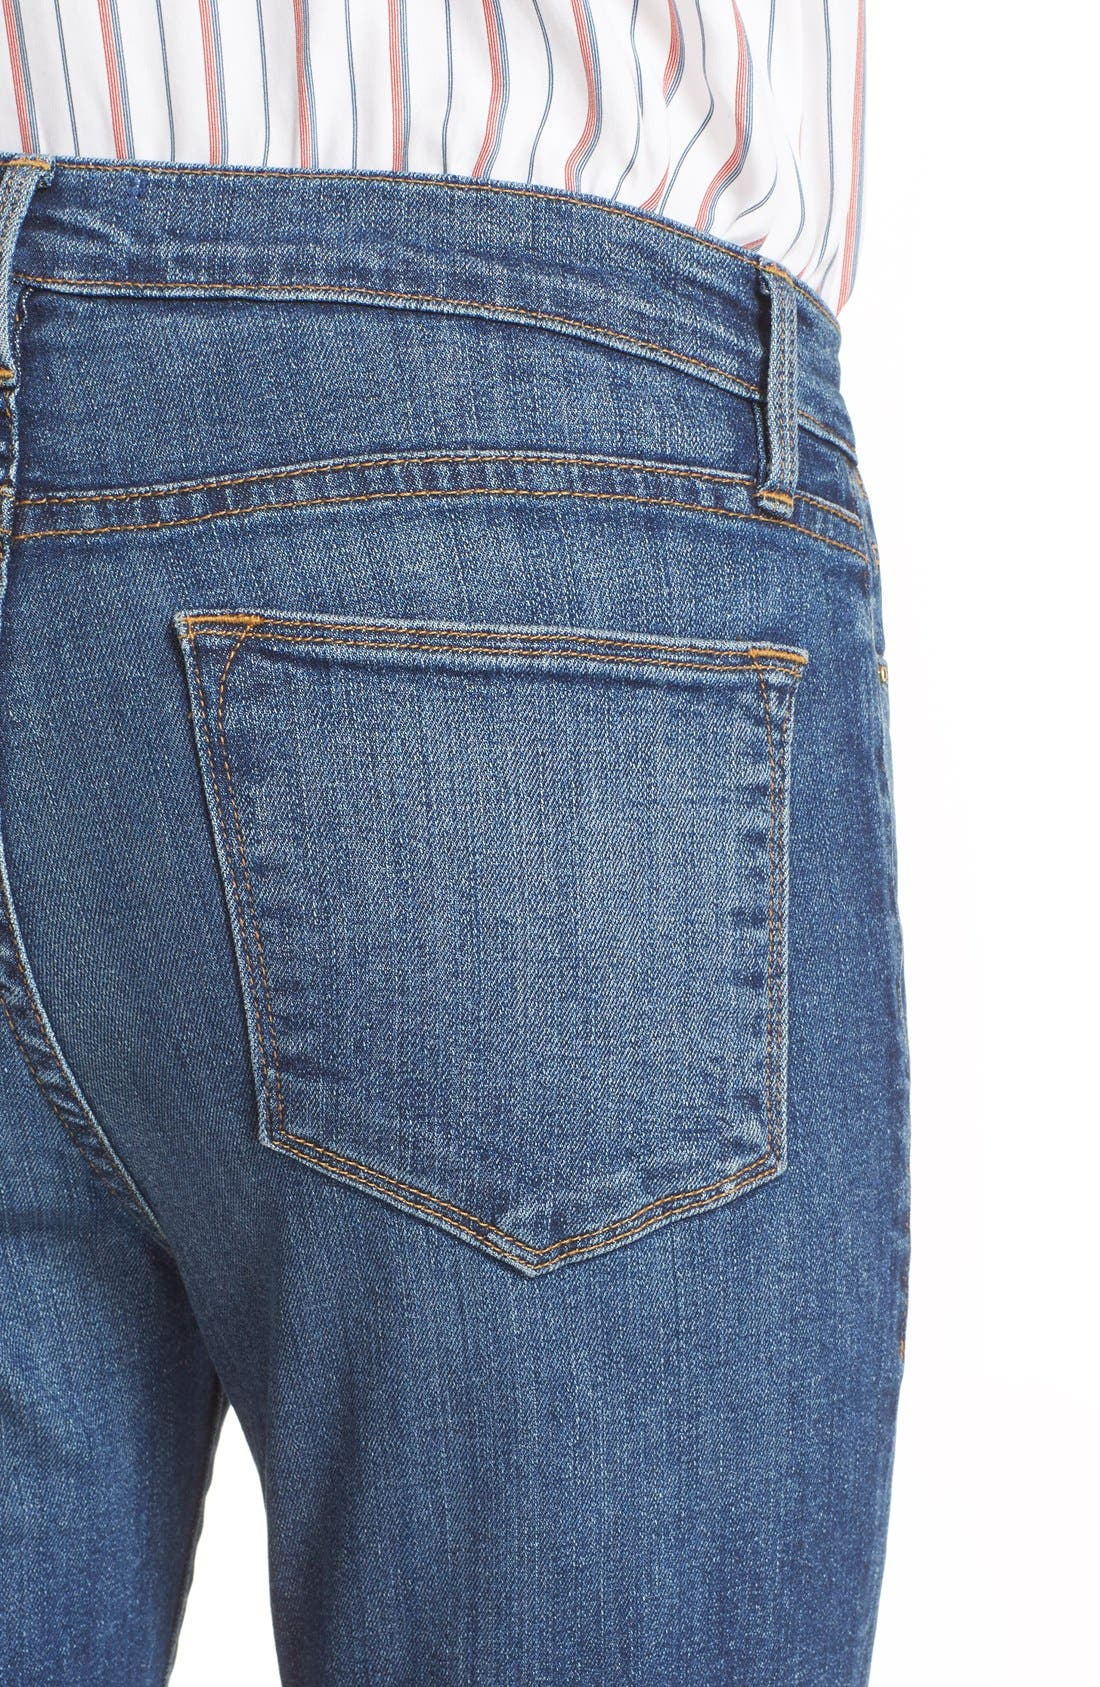 Alternate Image 4  - FRAME 'Le High Flare' Jeans (Neosho)